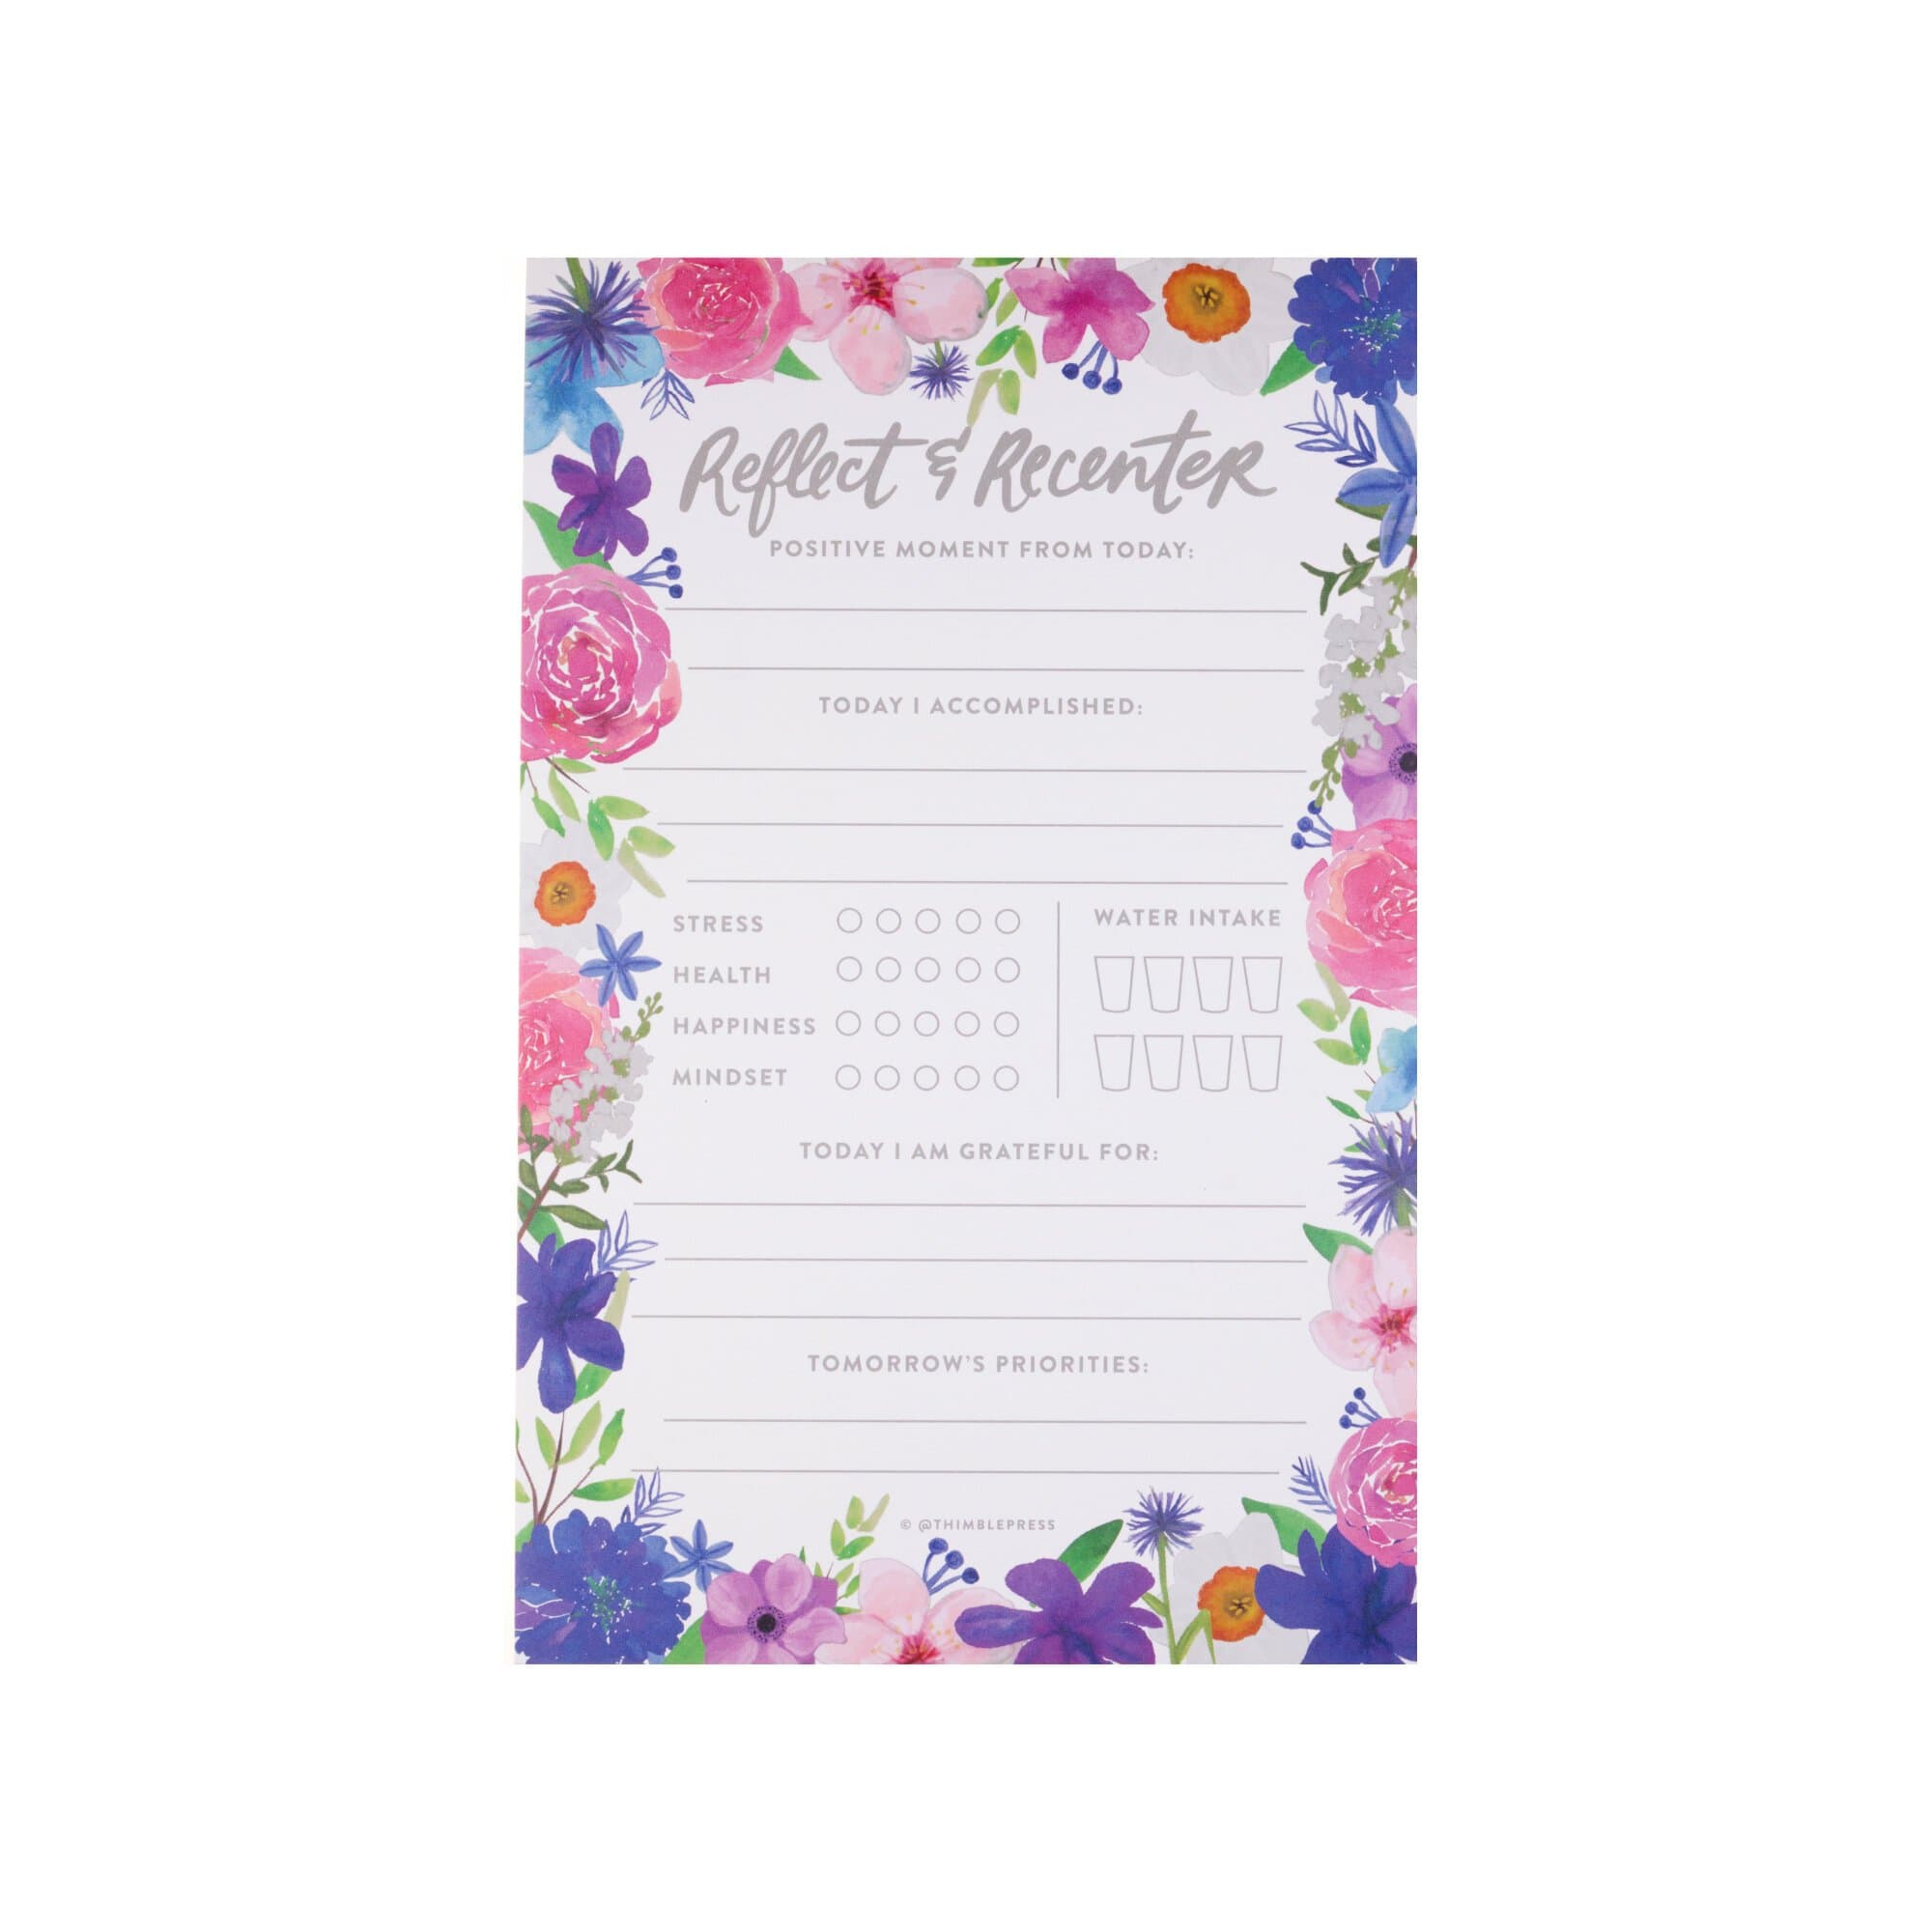 Reflect & Recenter Every Day Pad